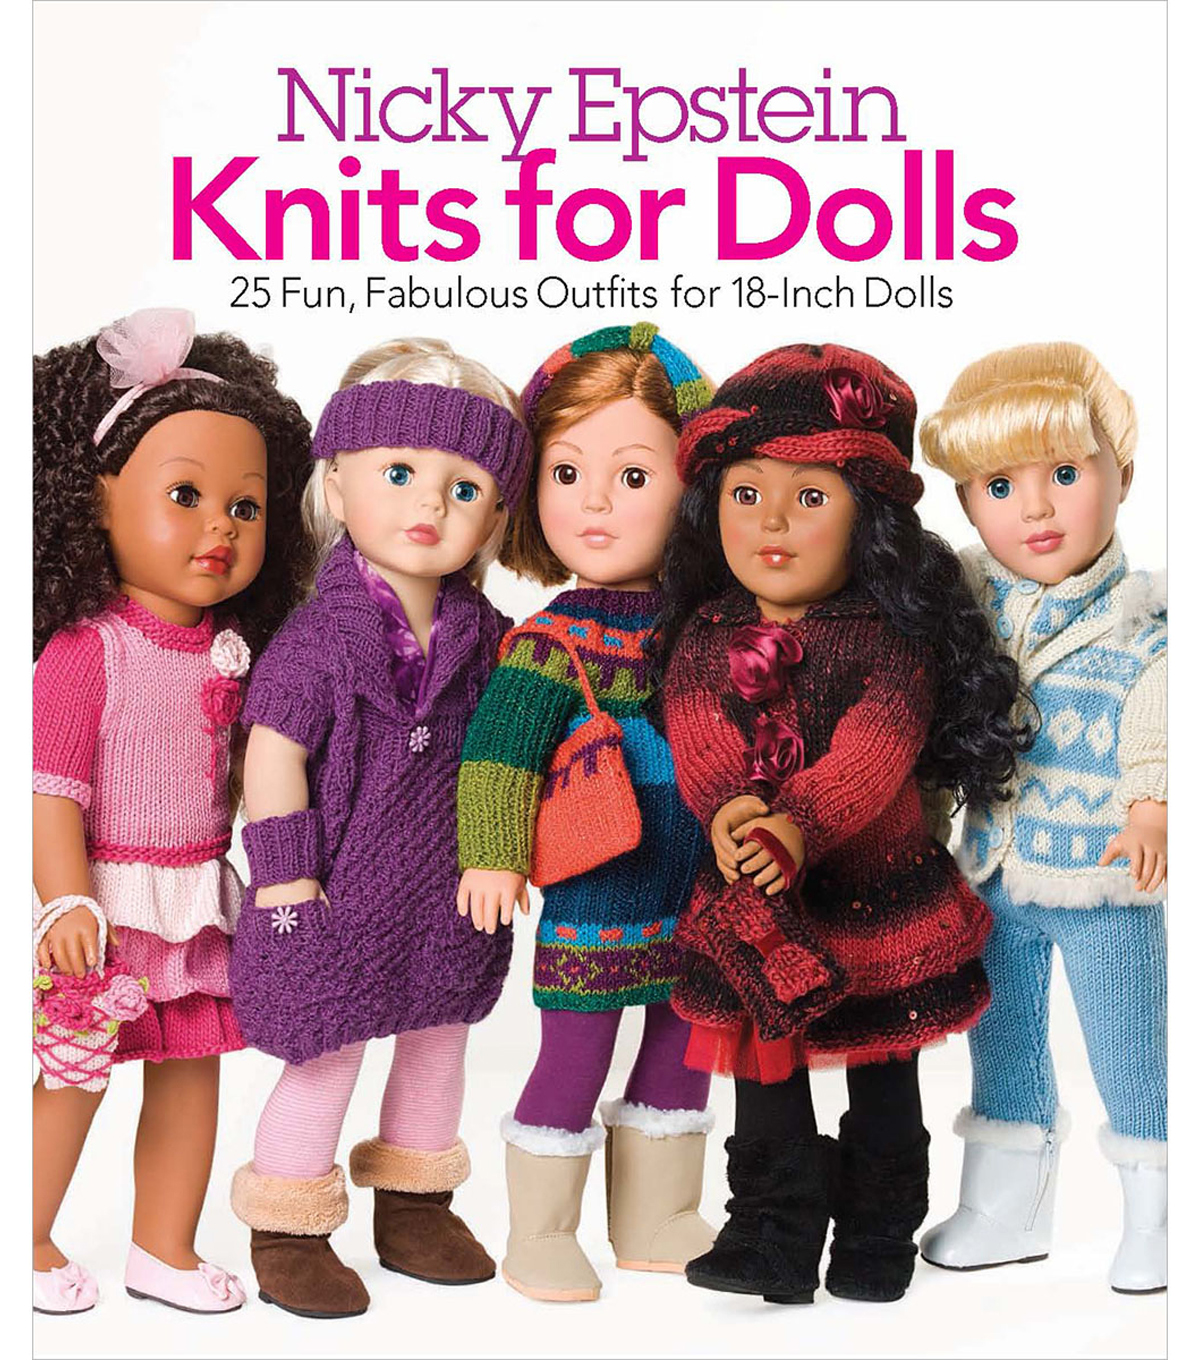 Nicky Epstein Books-Knits For Dolls